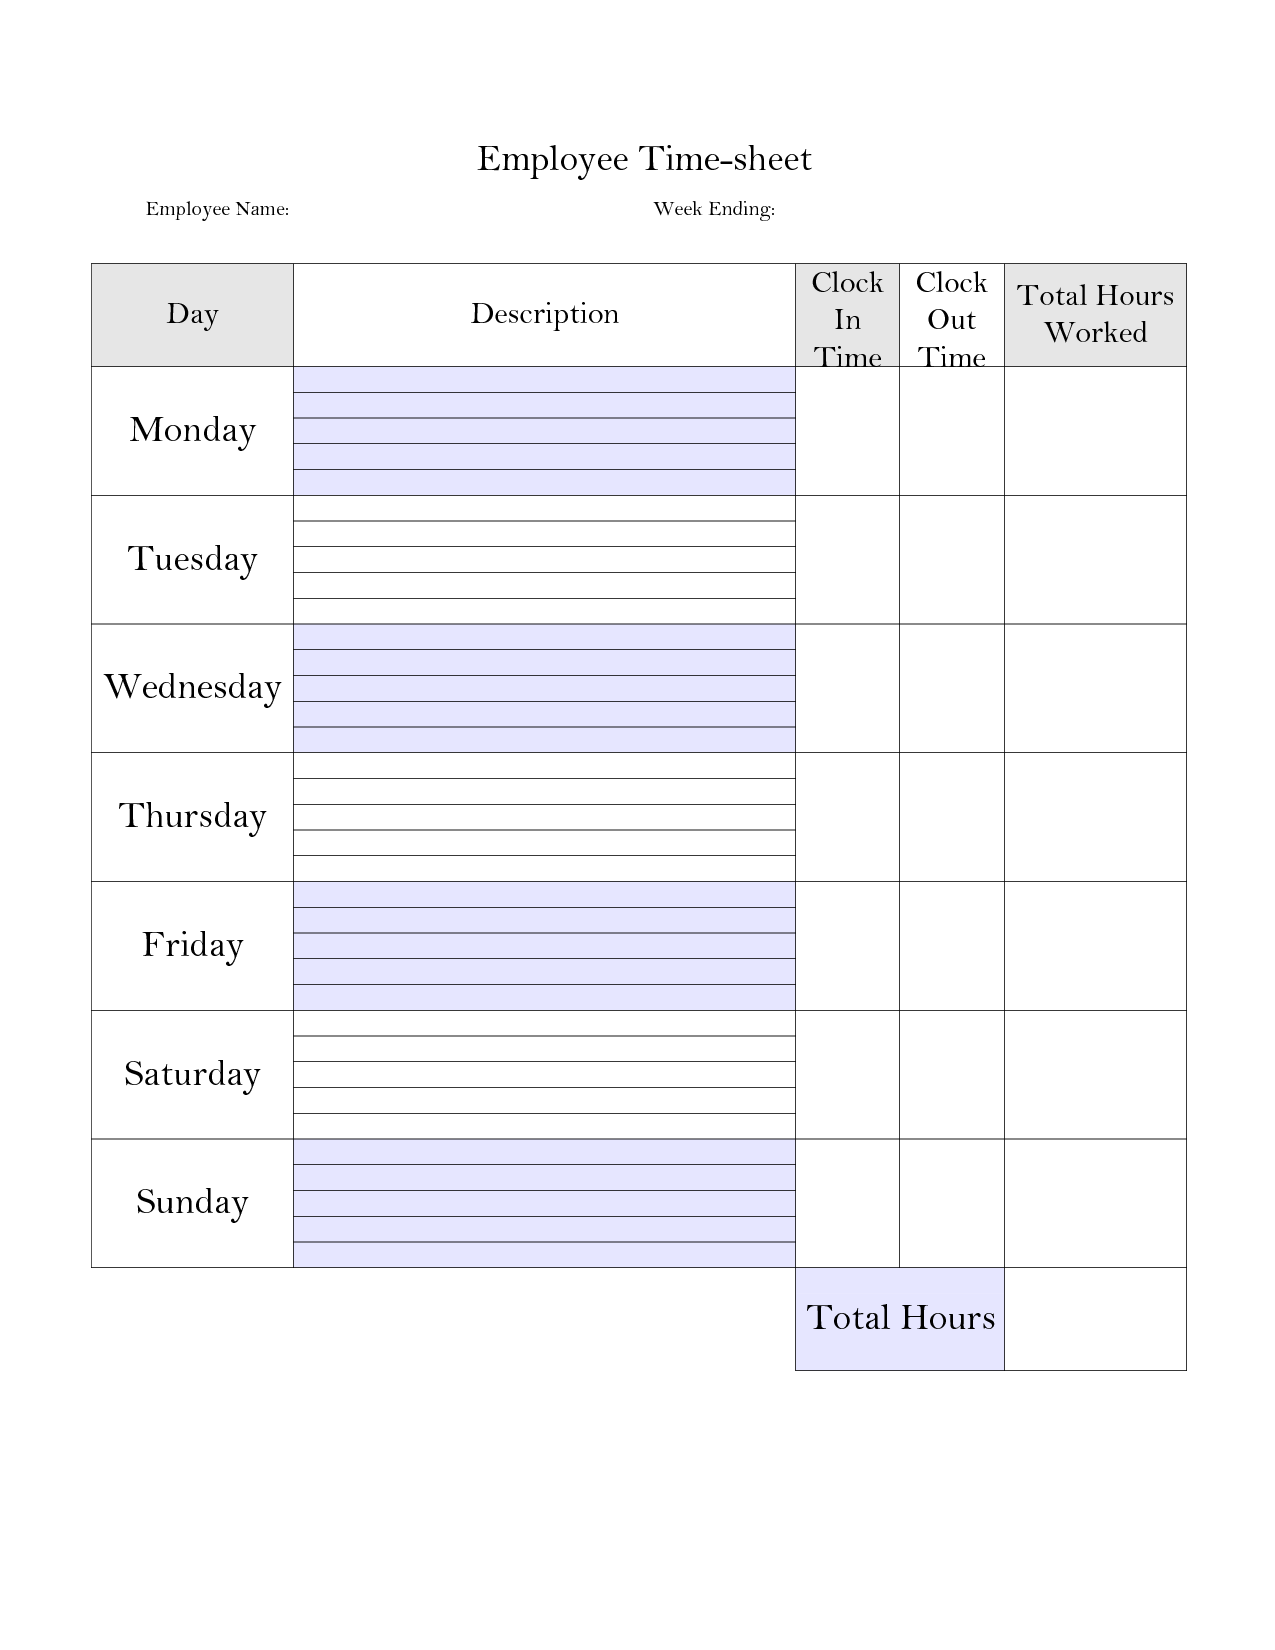 picture relating to Time Card Printable referred to as printable weekly personnel year card - Google Look